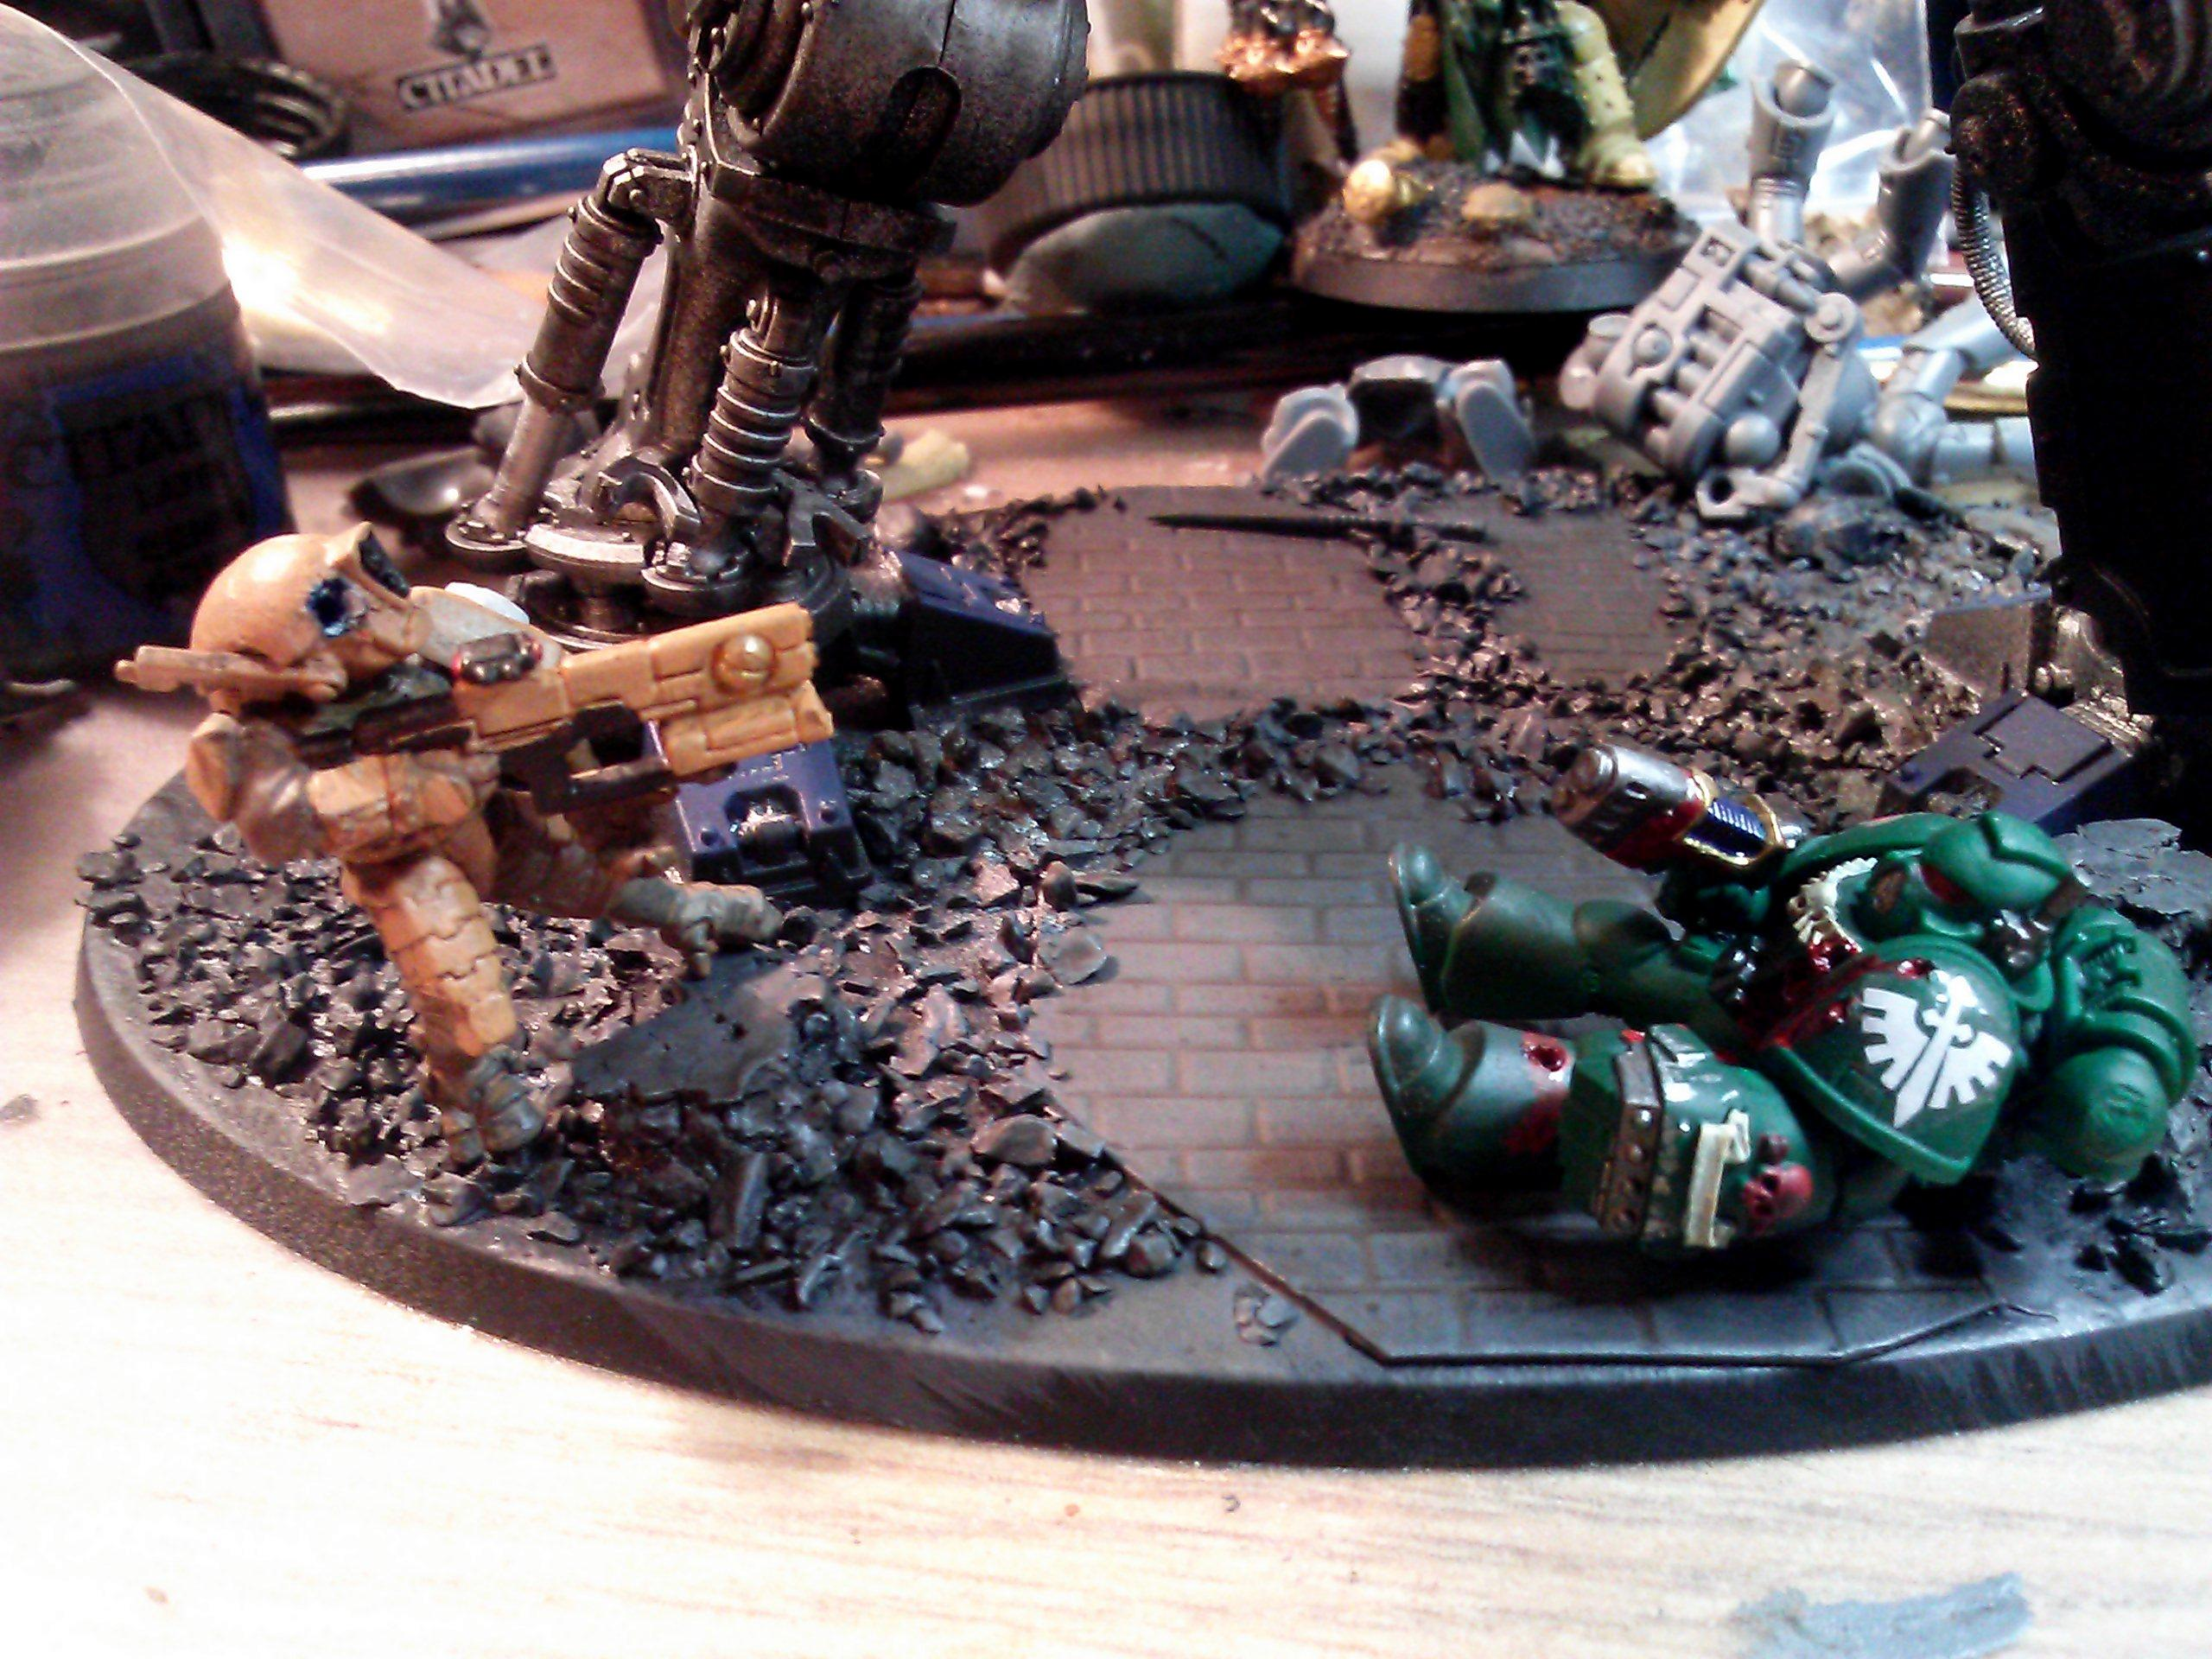 Base, Dark_angels, Headshot, Imperial_knight, Space_marine, Tau, Work In Progress, Wounded